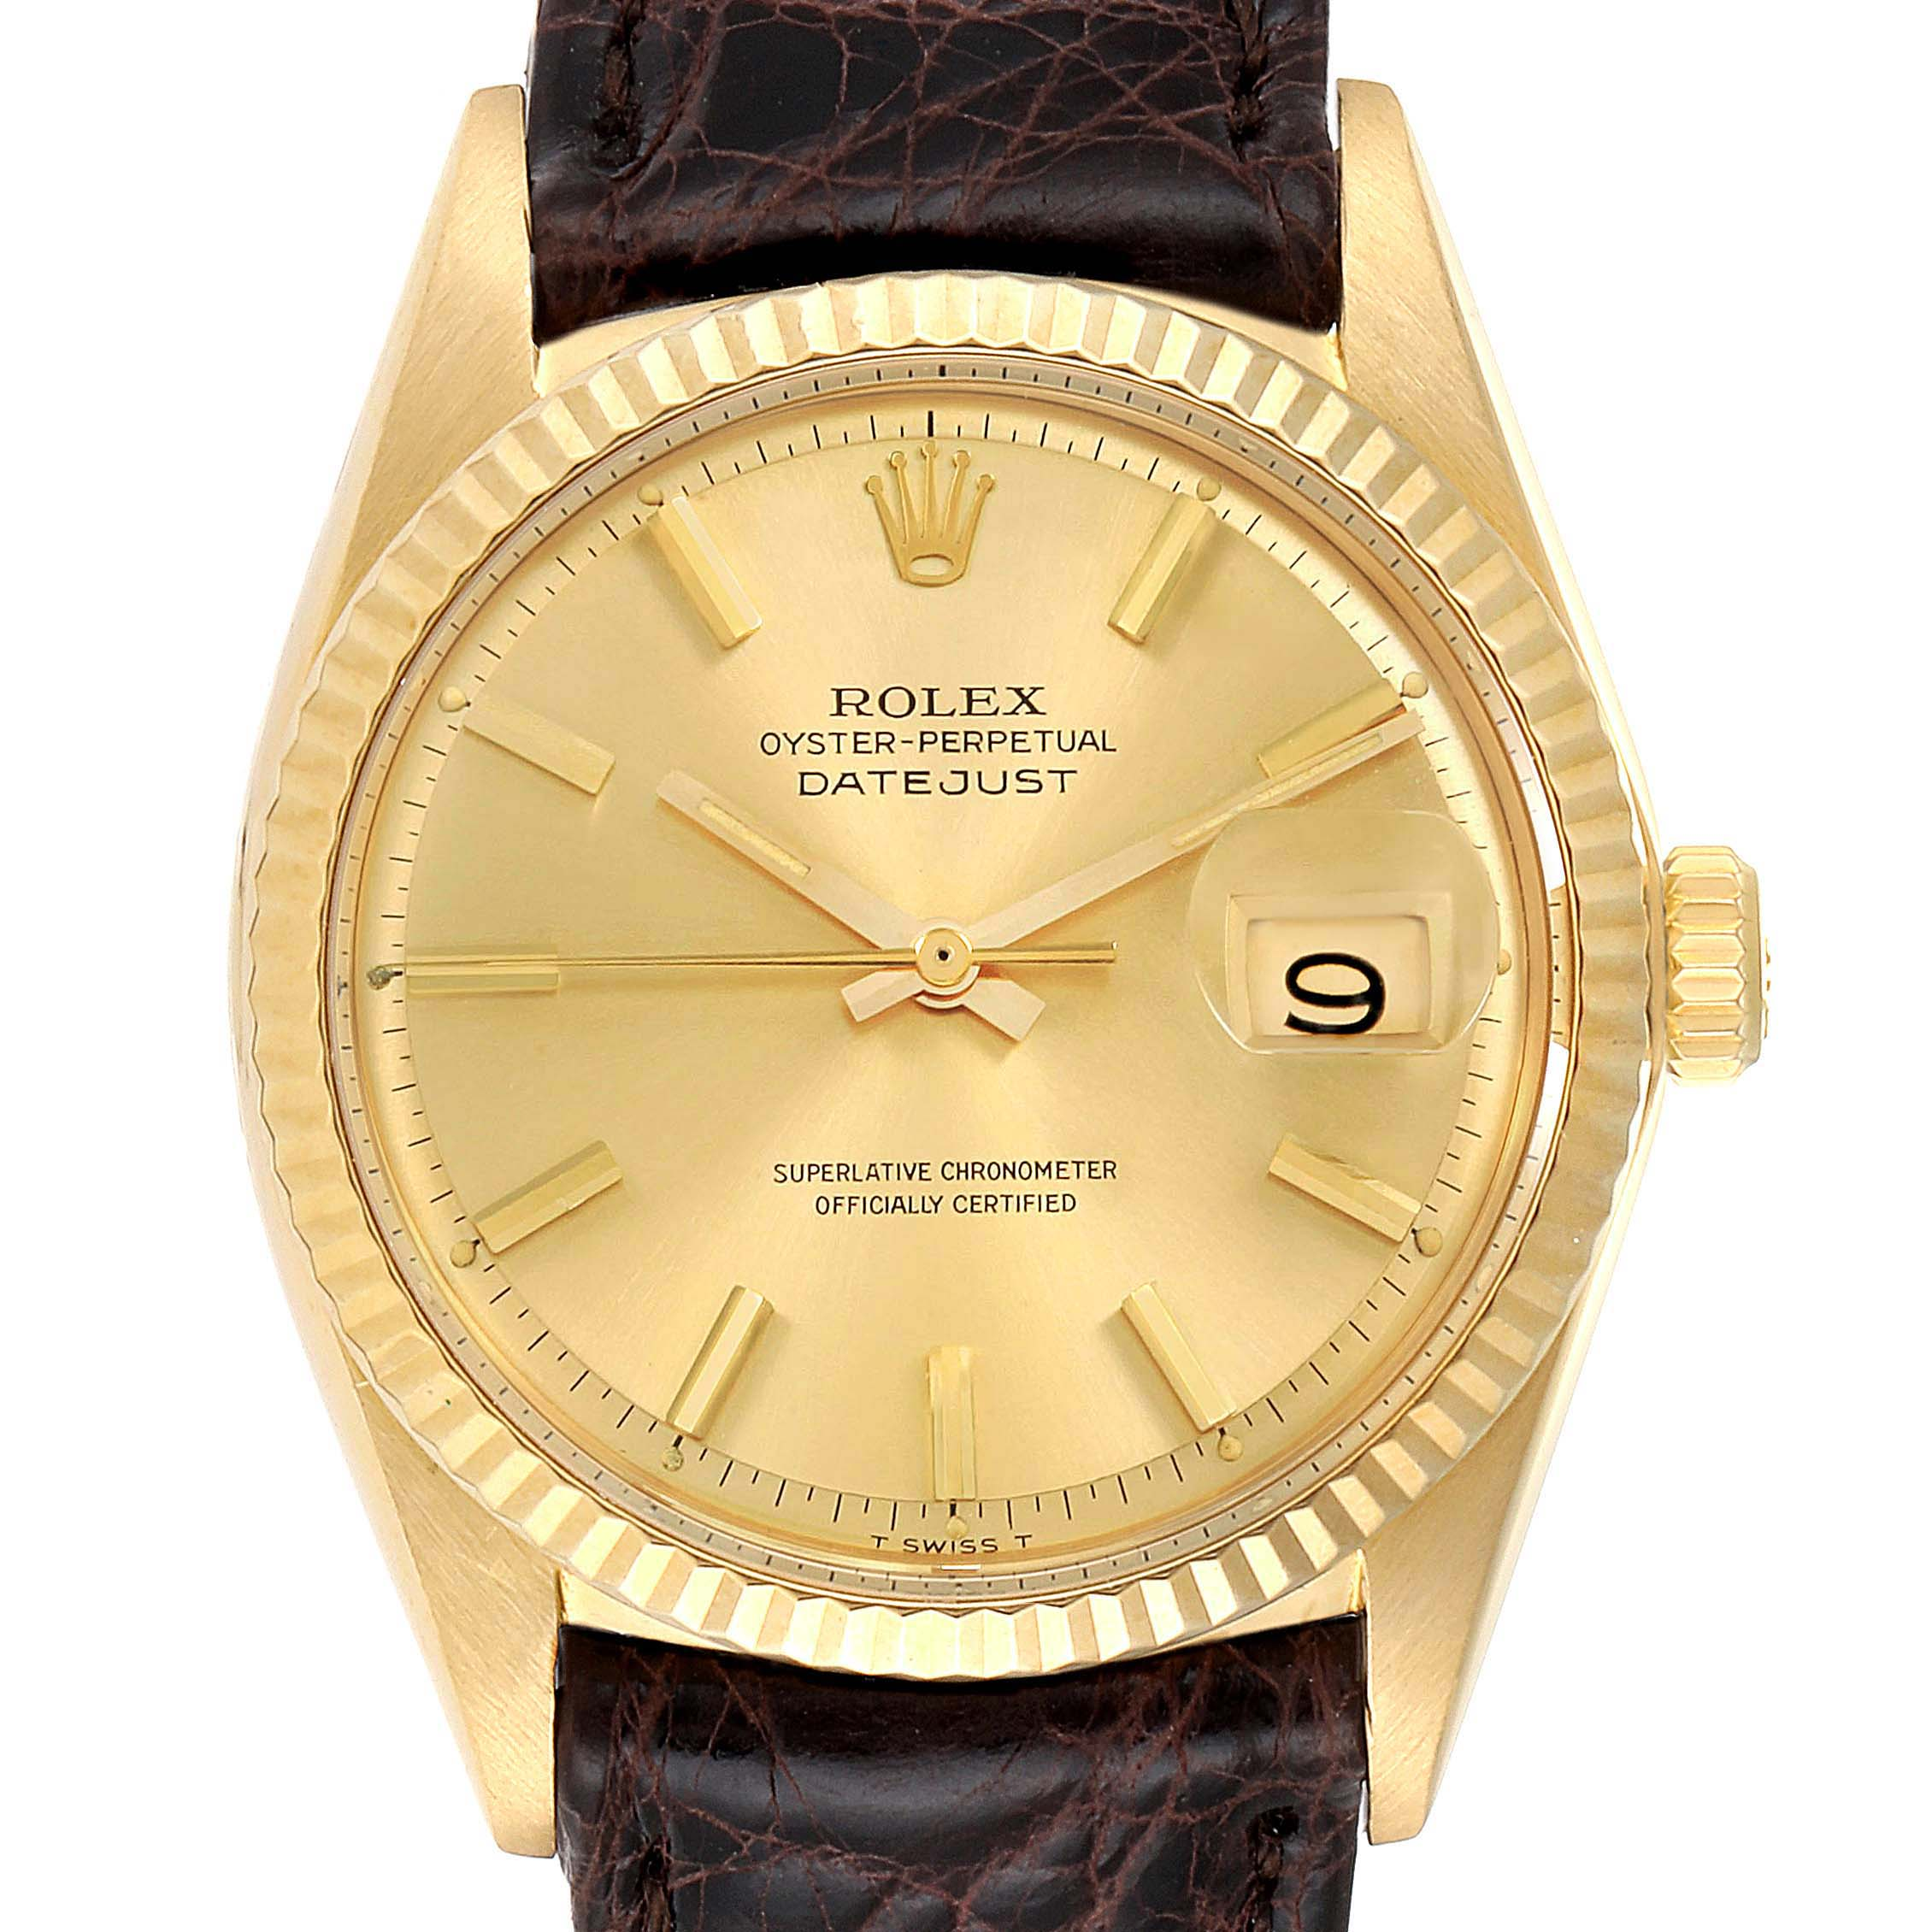 Rolex Datejust 18K Yellow Gold Brown Strap Vintage Mens Watch 1601